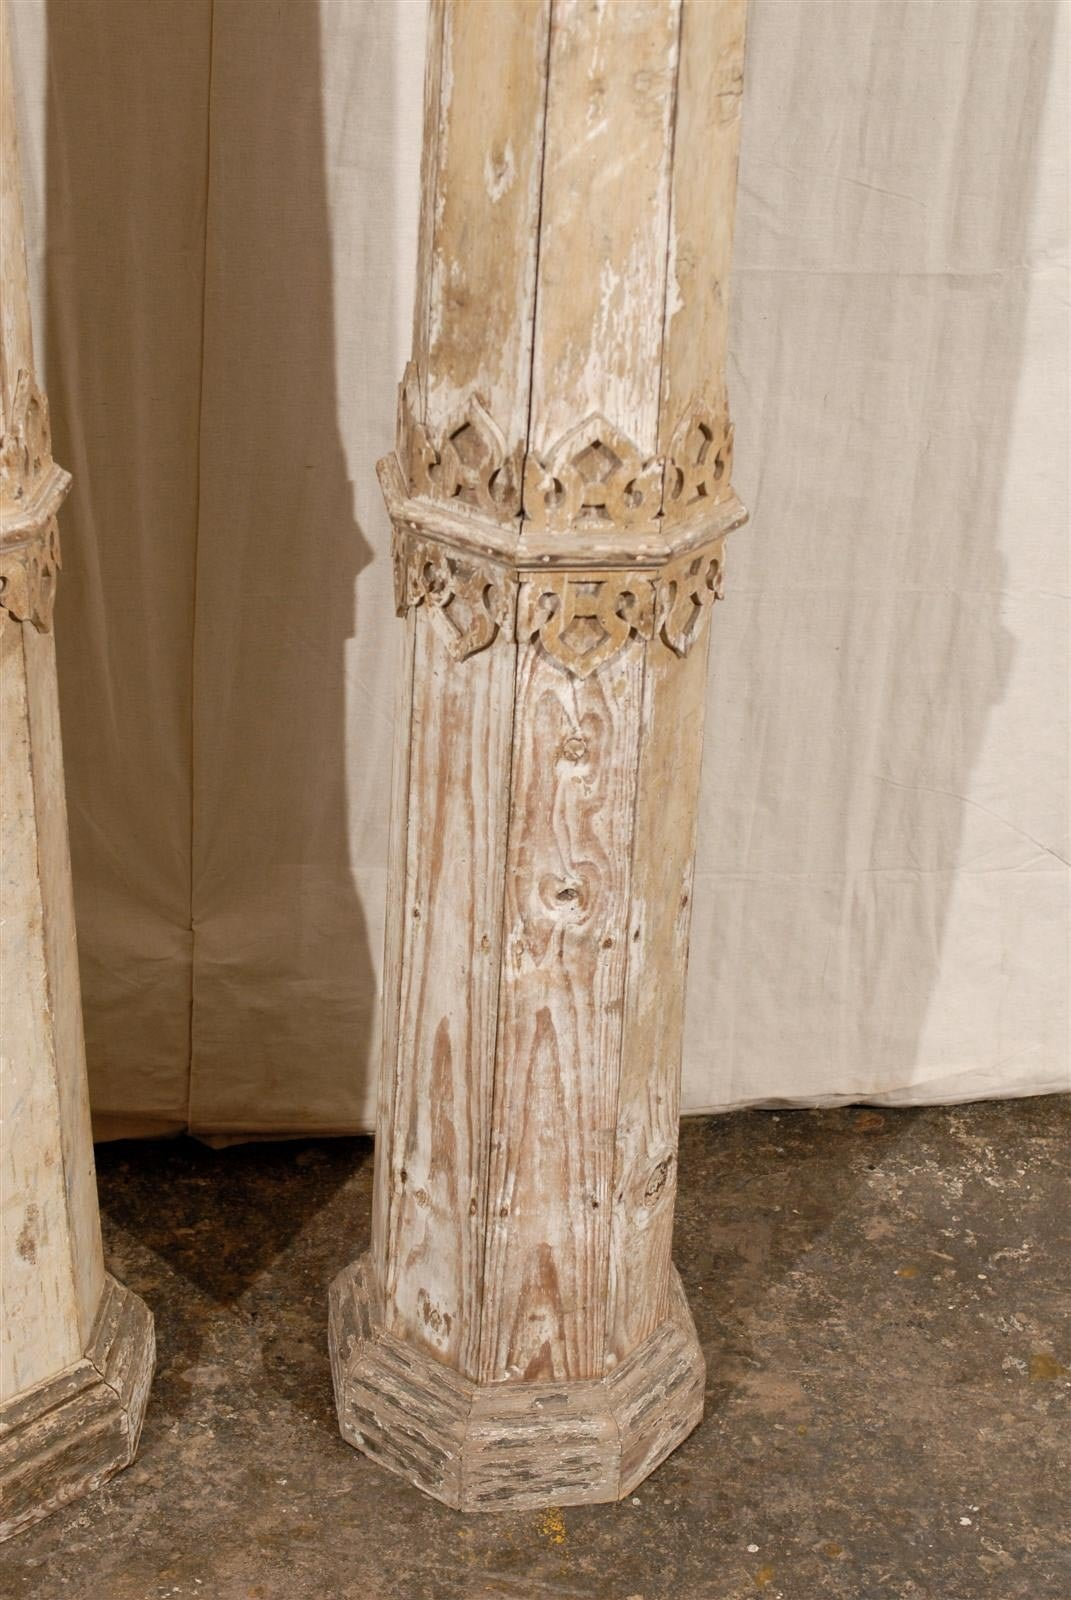 A Pair of 19th Century European Slender Wooden Columns with Delicate Decor 3